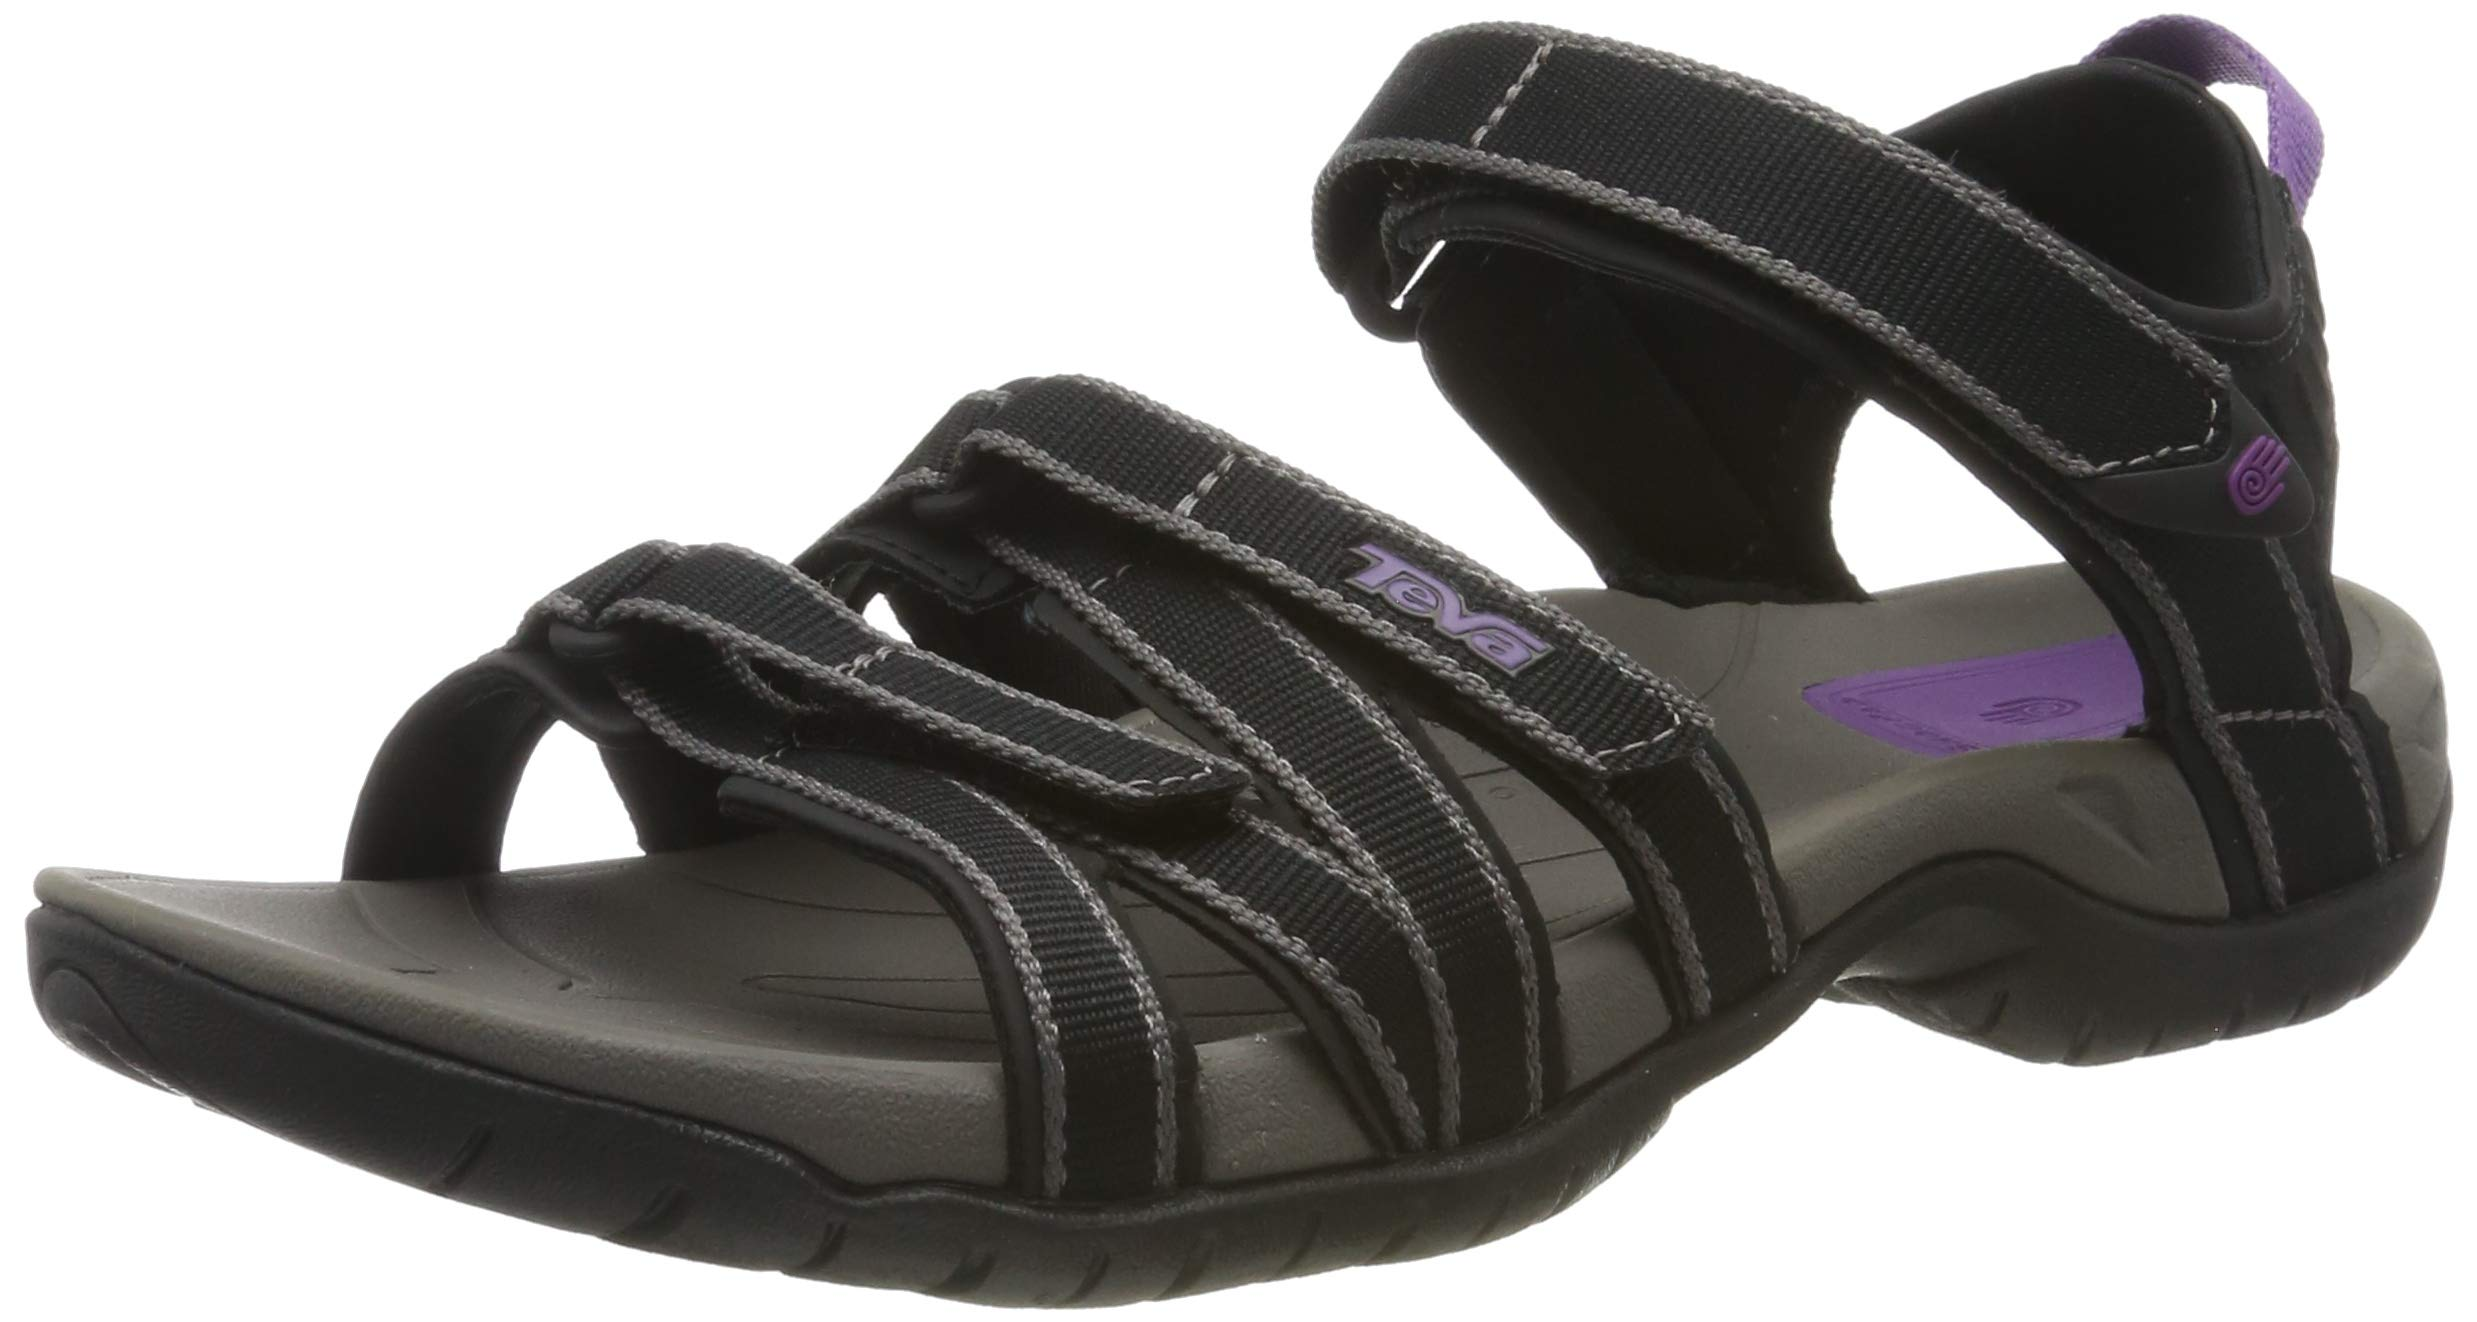 Teva Women's Tirra Sandal,Black/Grey,9 M US by Teva